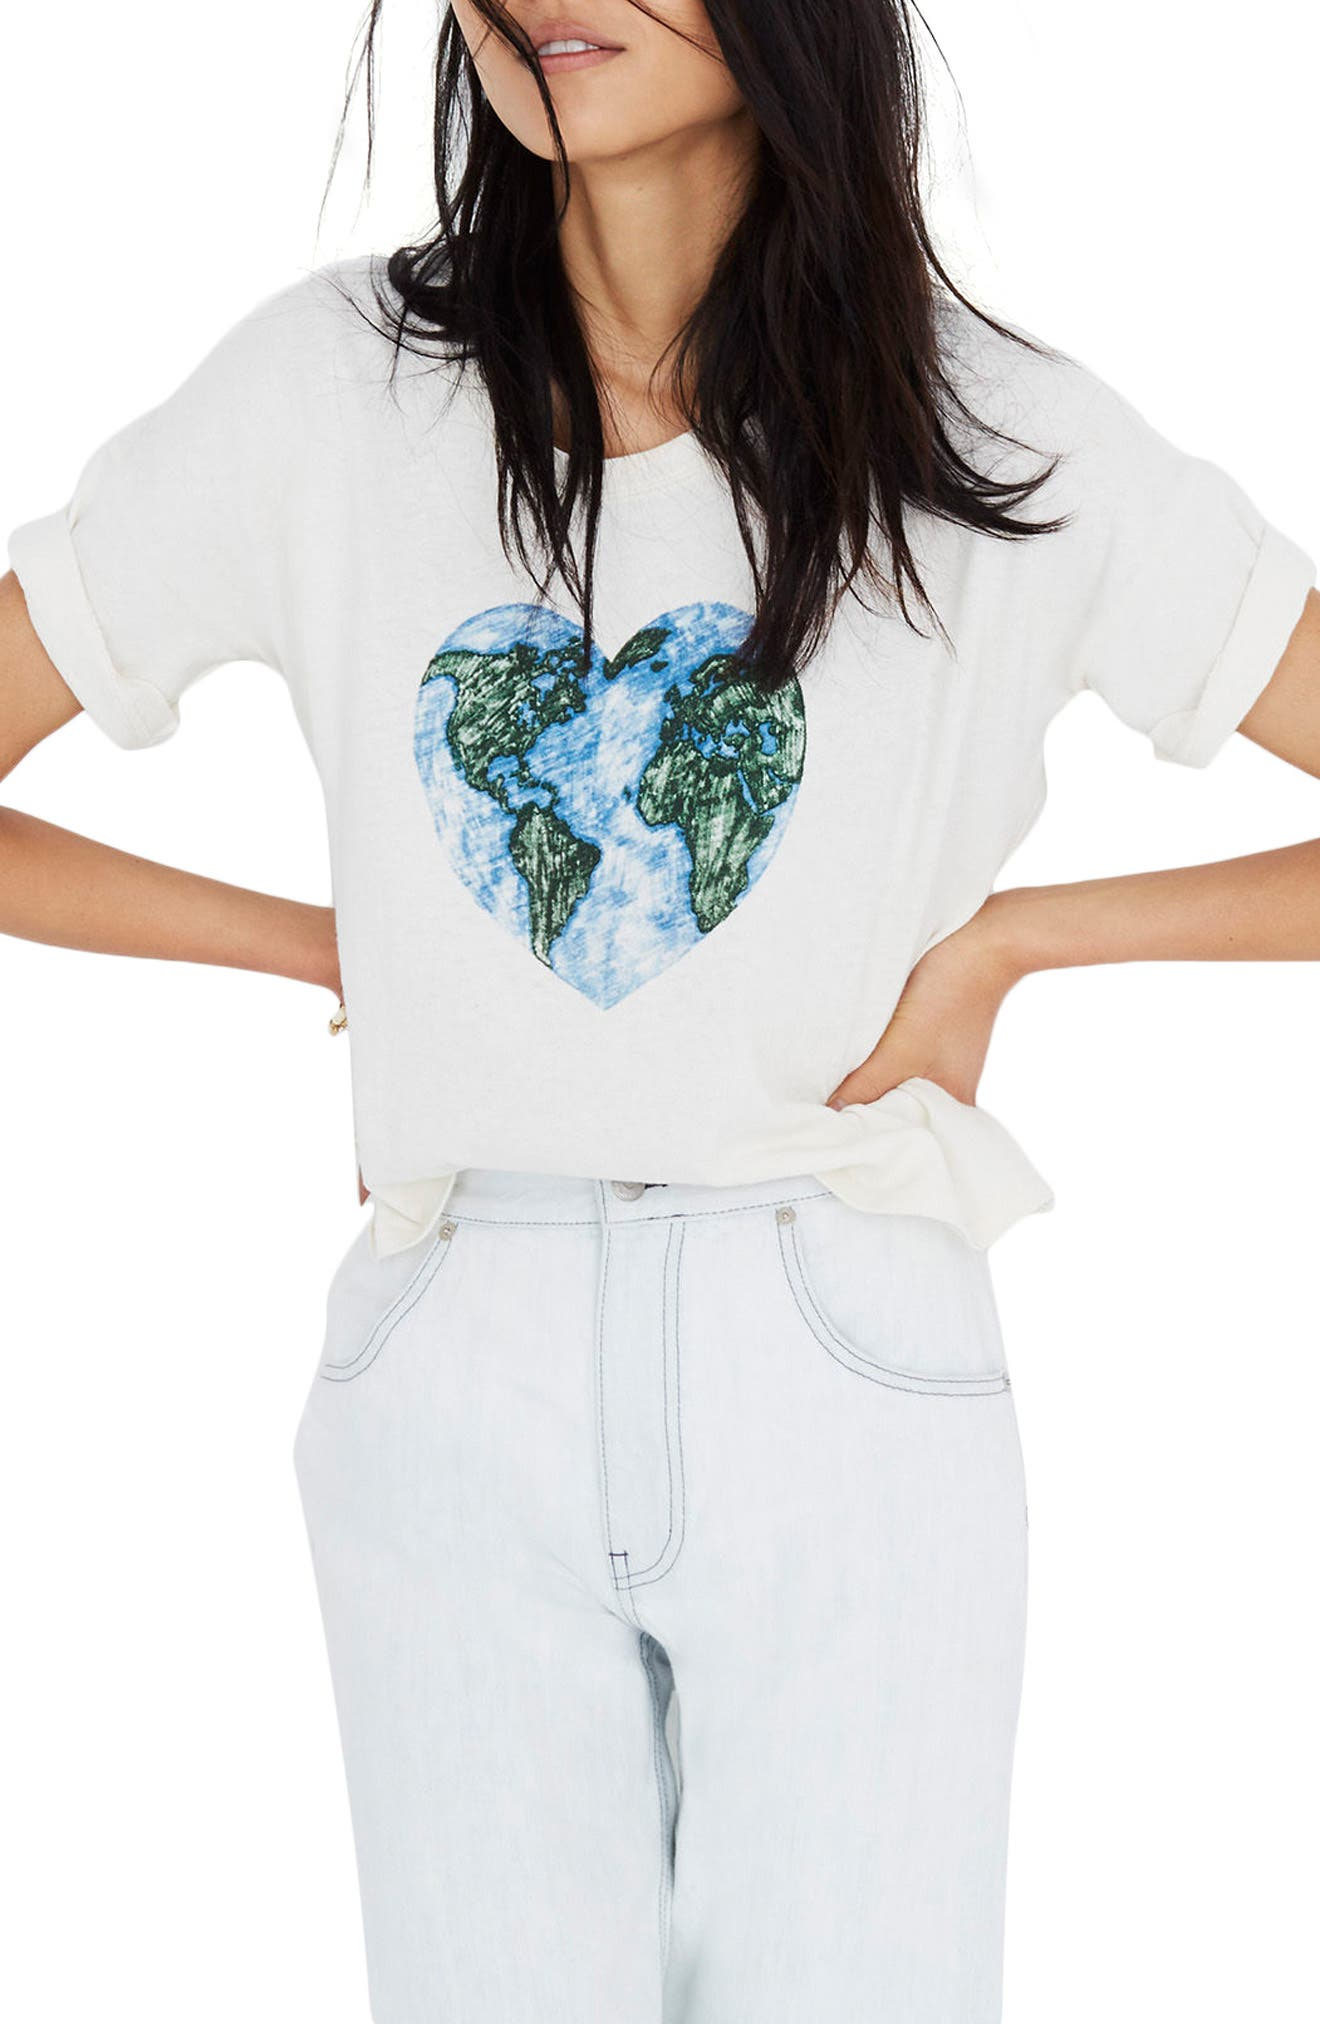 Main Image - Madewell x Surfrider Foundation Mother Earth Tee